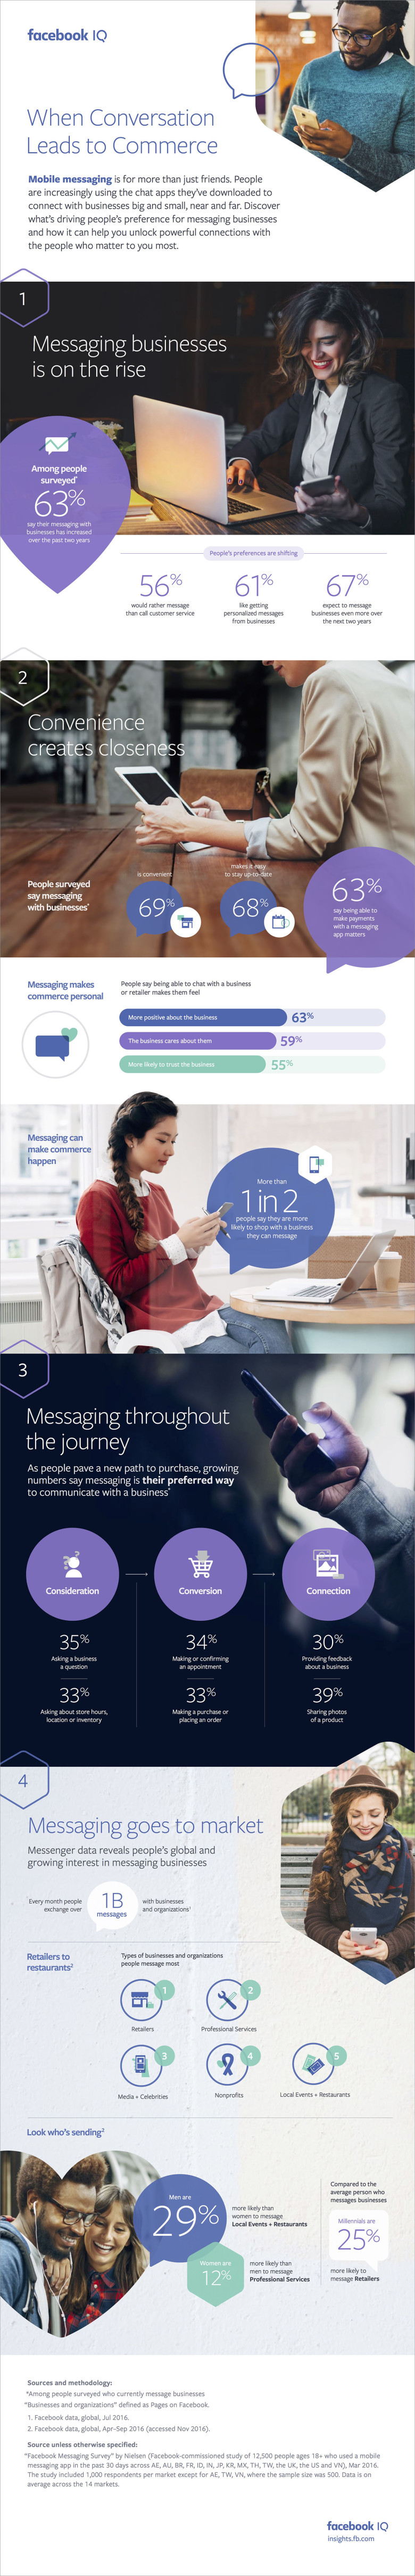 Facebook Releases New Data on the Rising Opportunity of Messenger for Business [Infographic] | Social Media Today